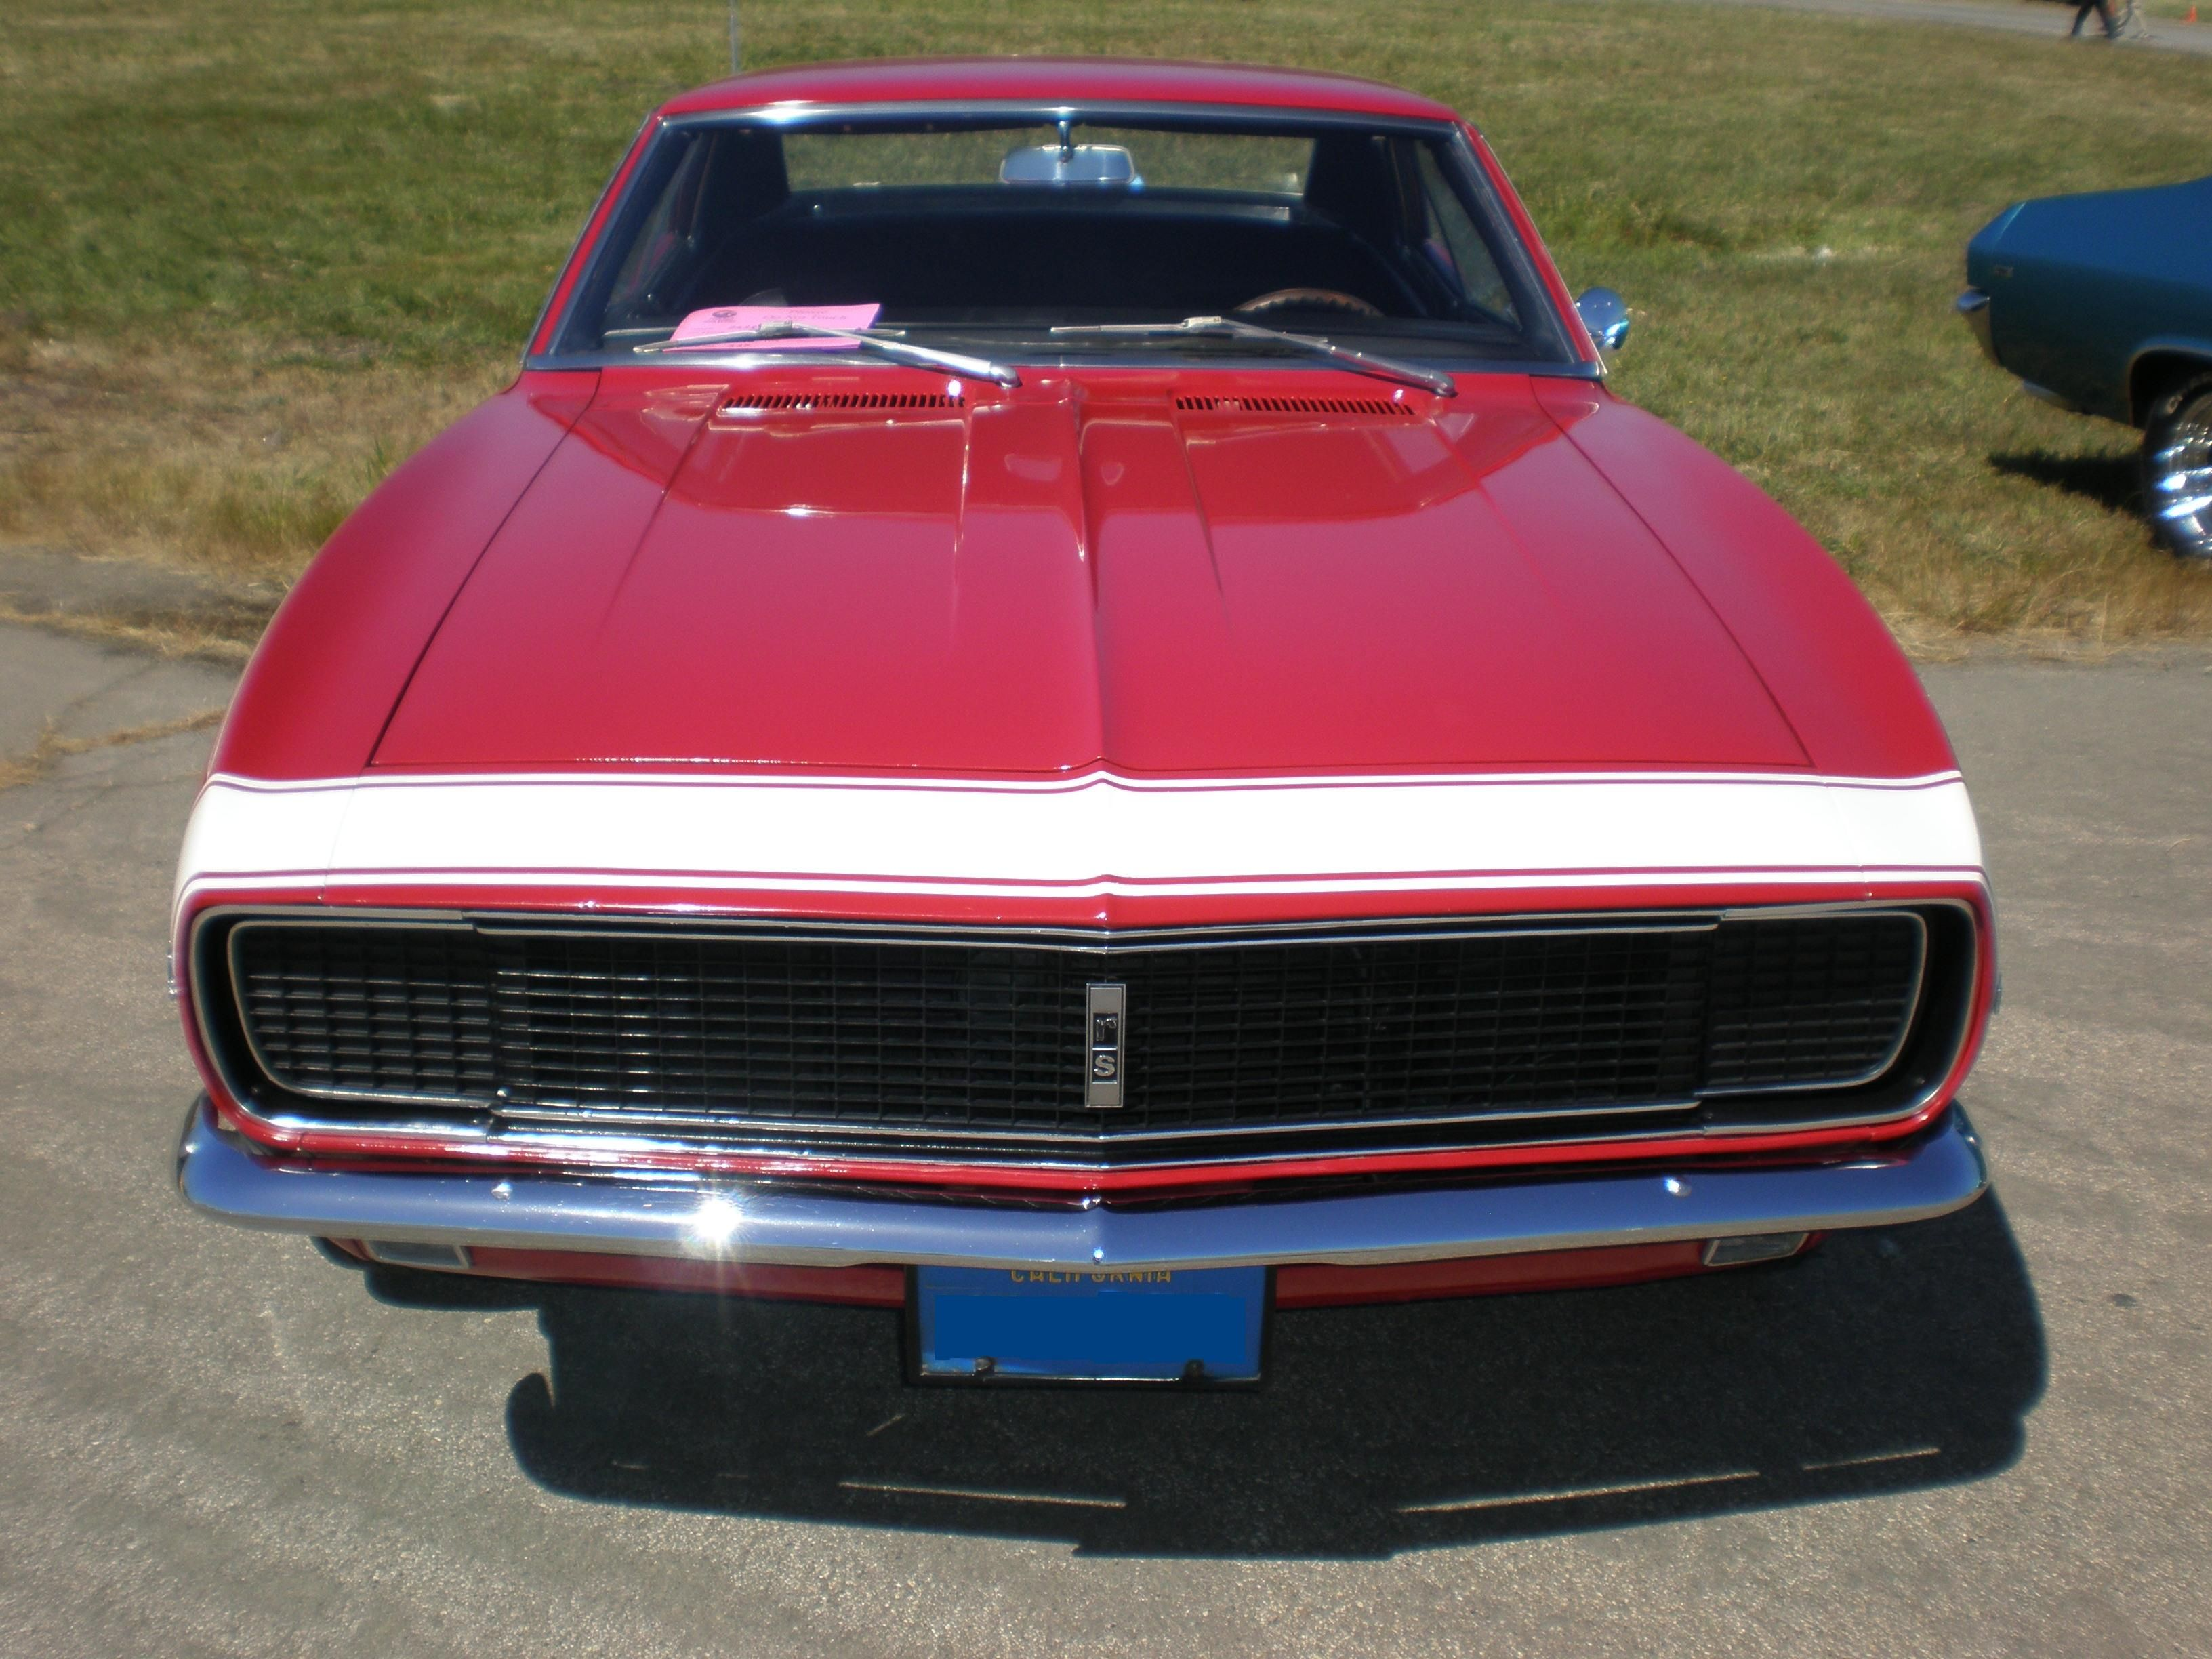 [Image: 1967_red_Chevrolet_Camaro_RS_front.JPG]